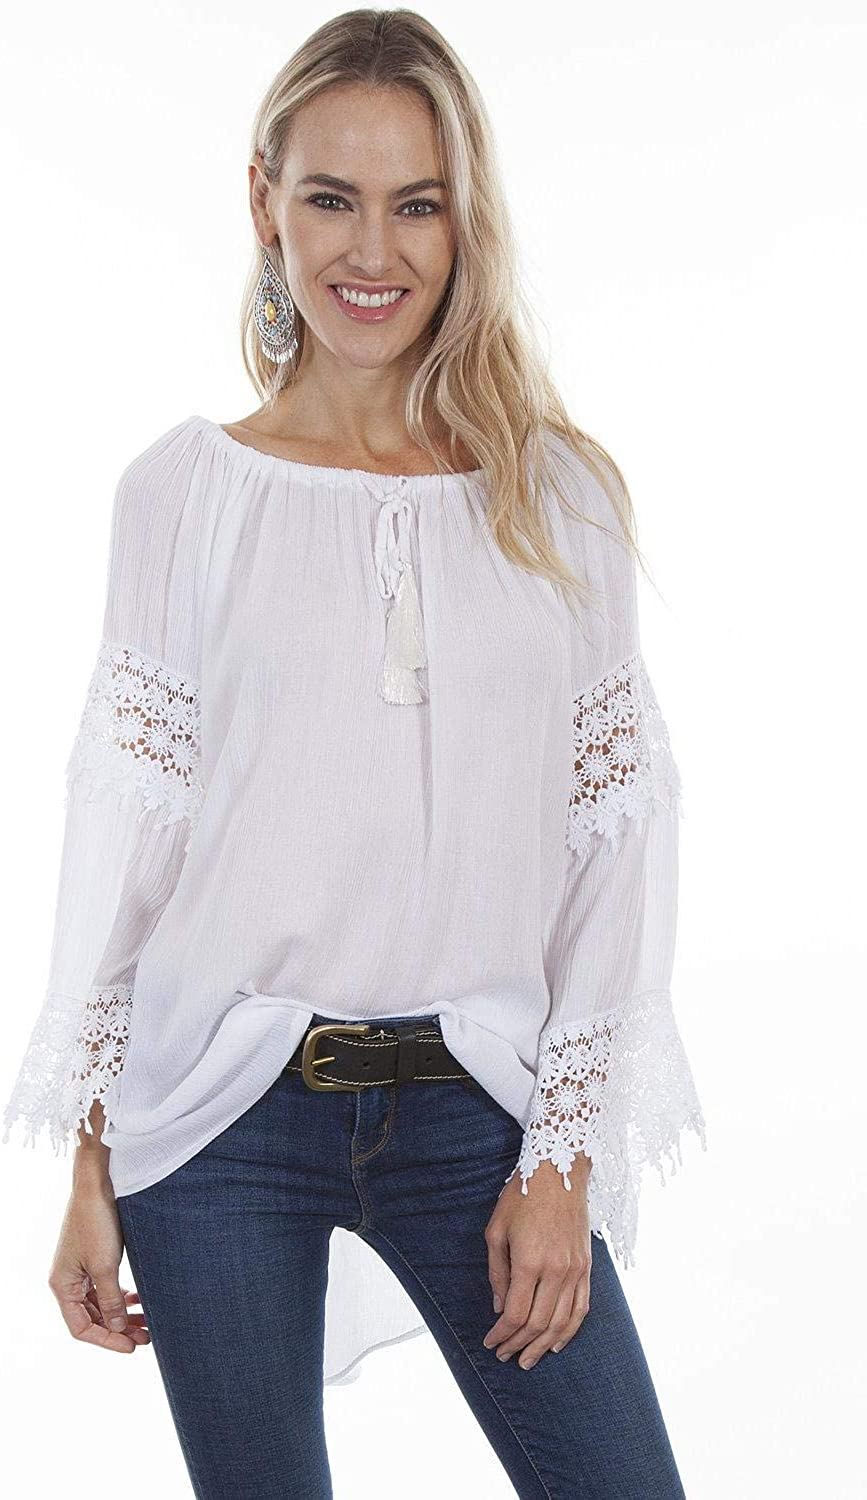 SCULLY Women's Honey Creek by Crochet Lace Long Sleeve Blouse